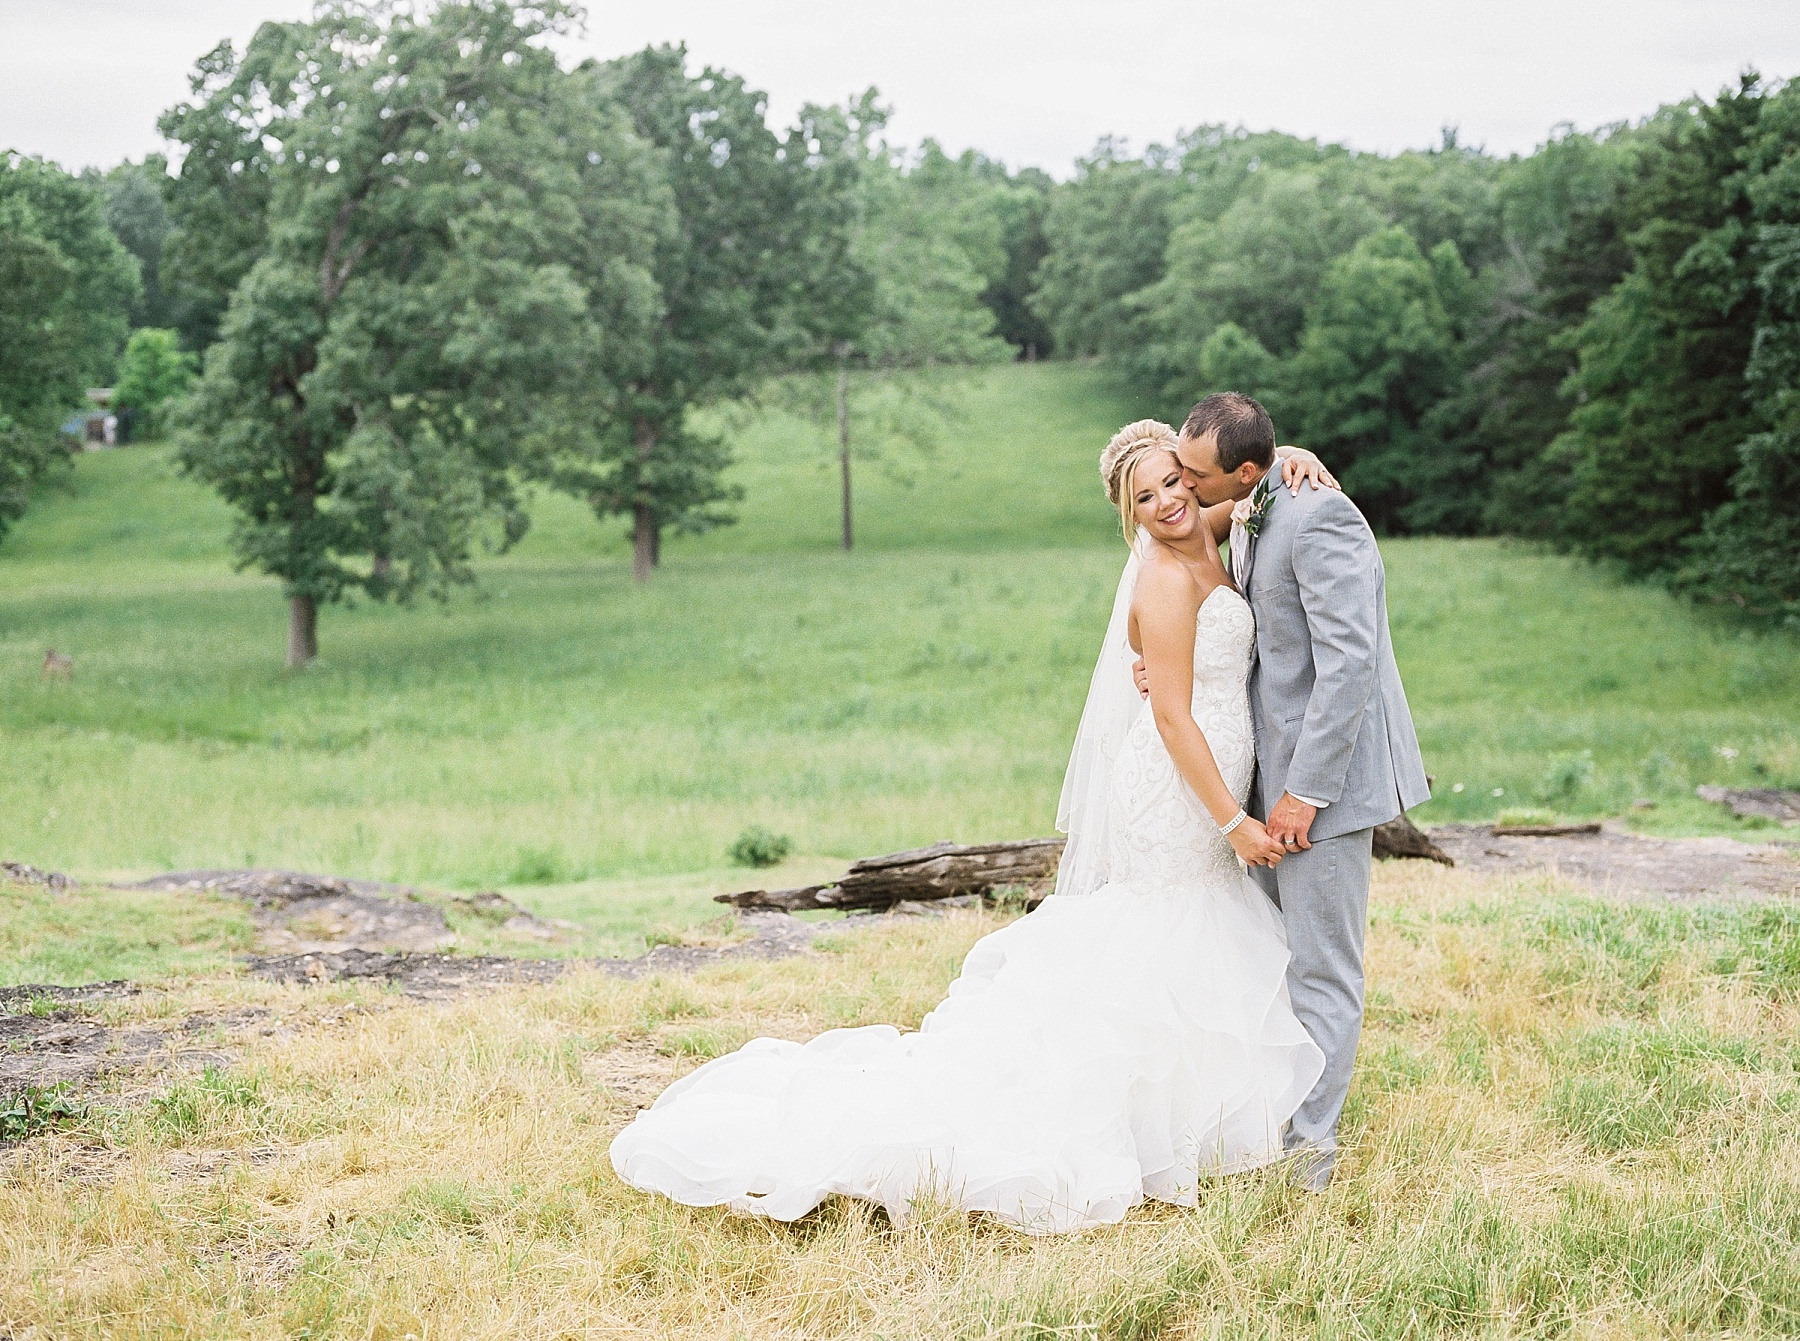 Sky Blue and Quartz Spring Wedding at Open Fields of Family Farm by Kelsi Kliethermes Photography Best Missouri and Maui Wedding Photographer_0025.jpg